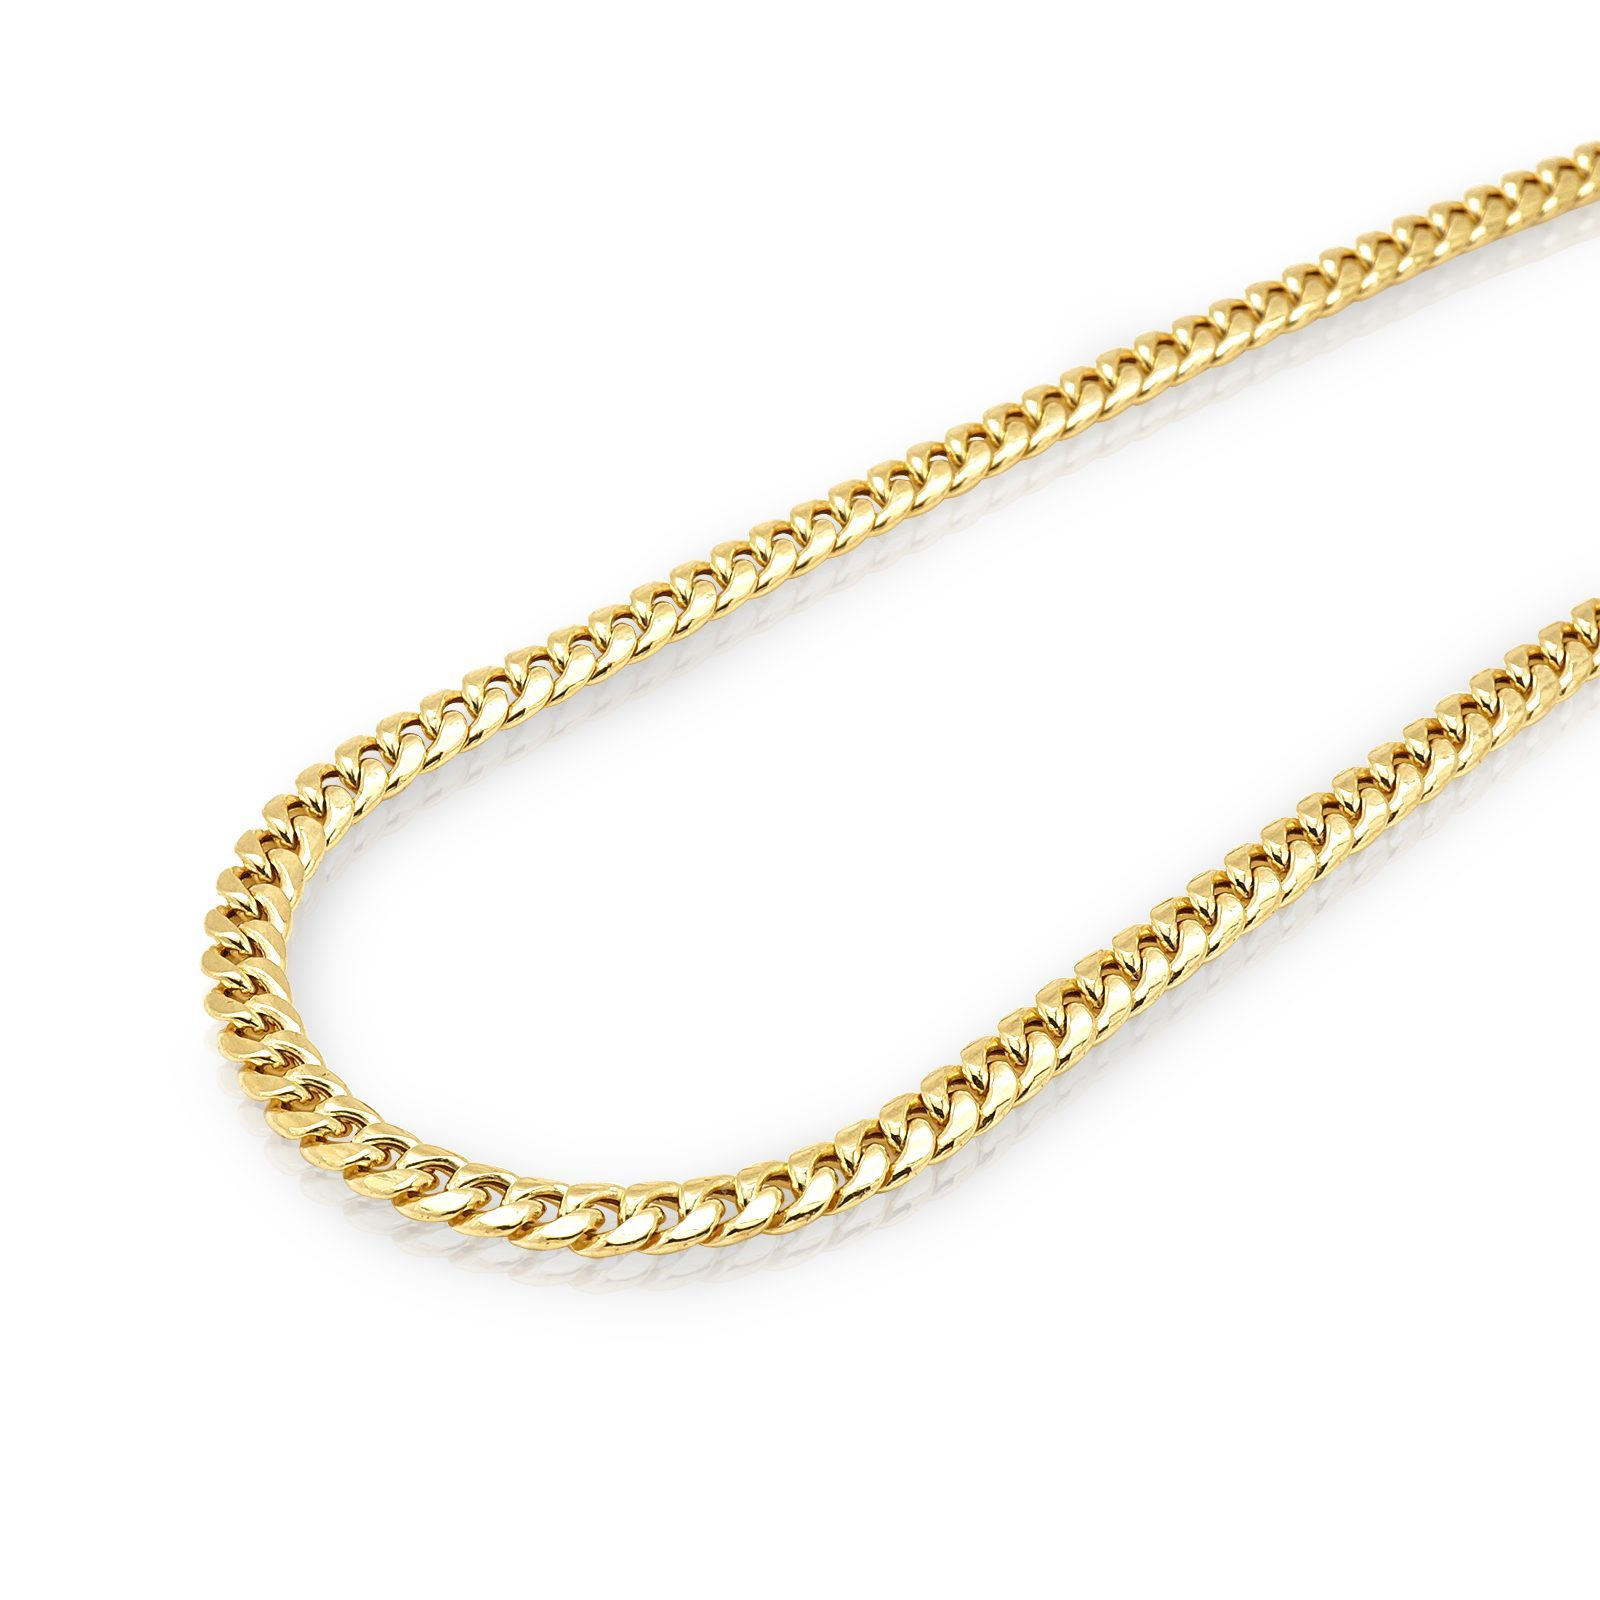 10k Gold Cuban Link Chain >> 10k Solid Yellow Gold 6mm Hollow Miami Cuban Link Chain Necklace 24